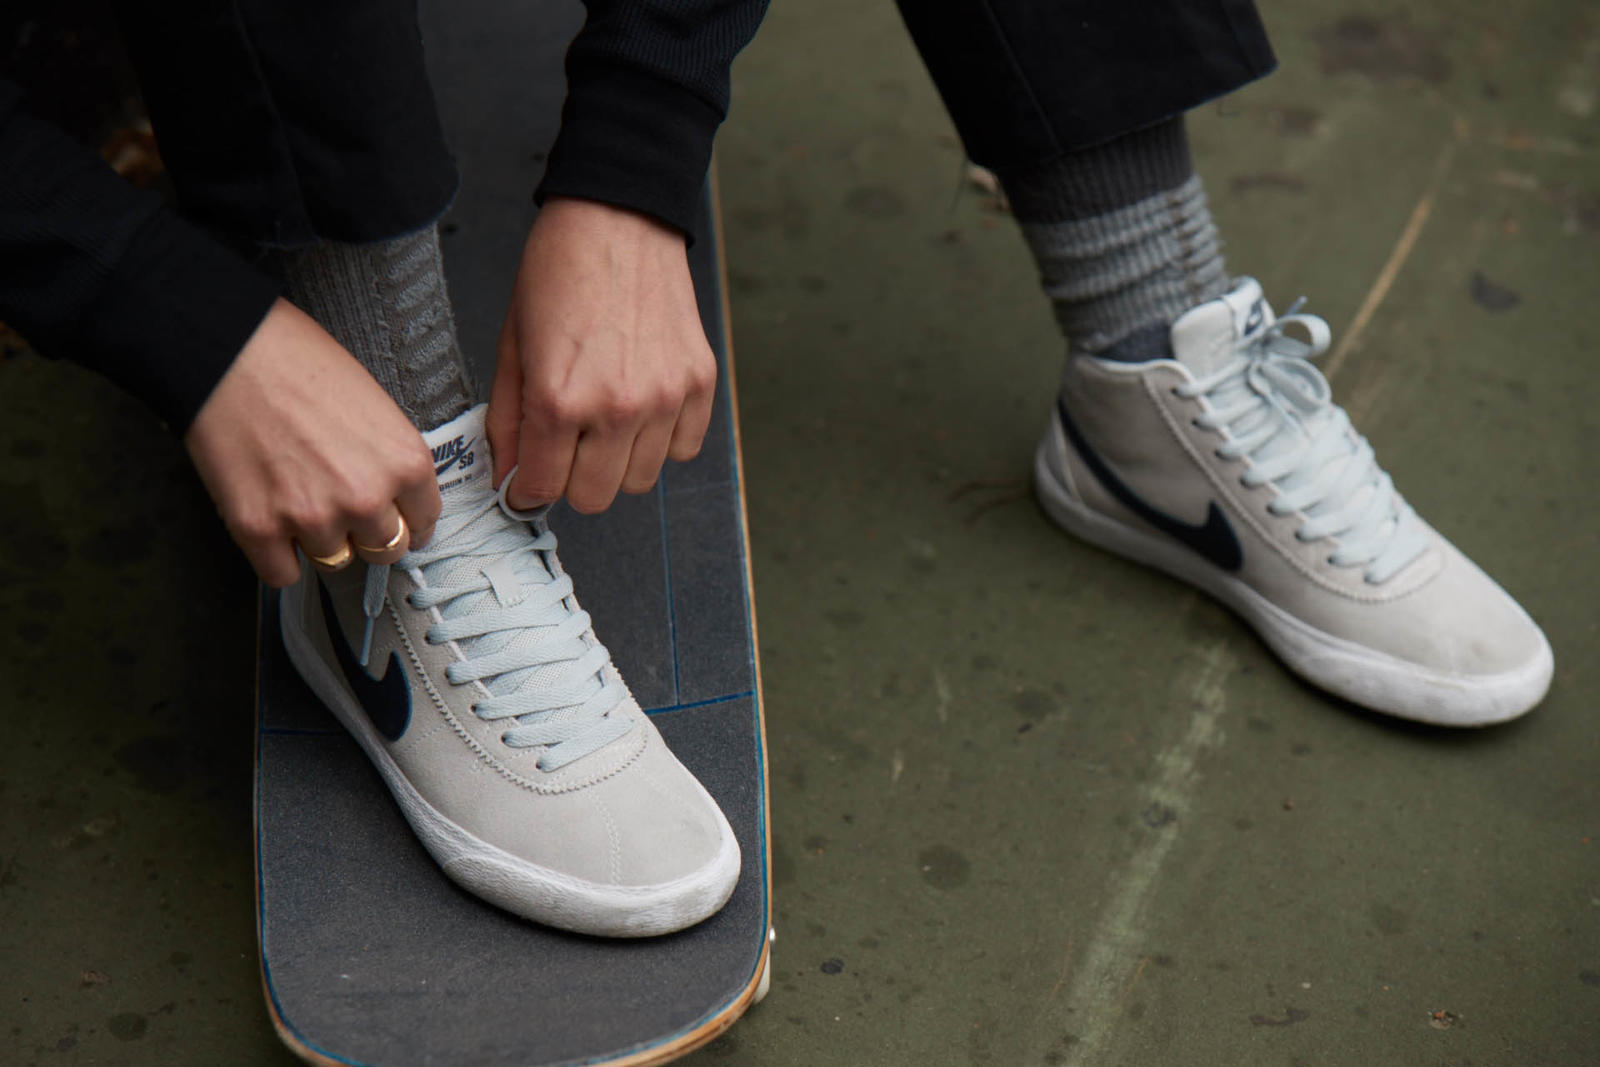 The First Nike Skate Shoe Designed For Women - Nike News 7b9e5192c